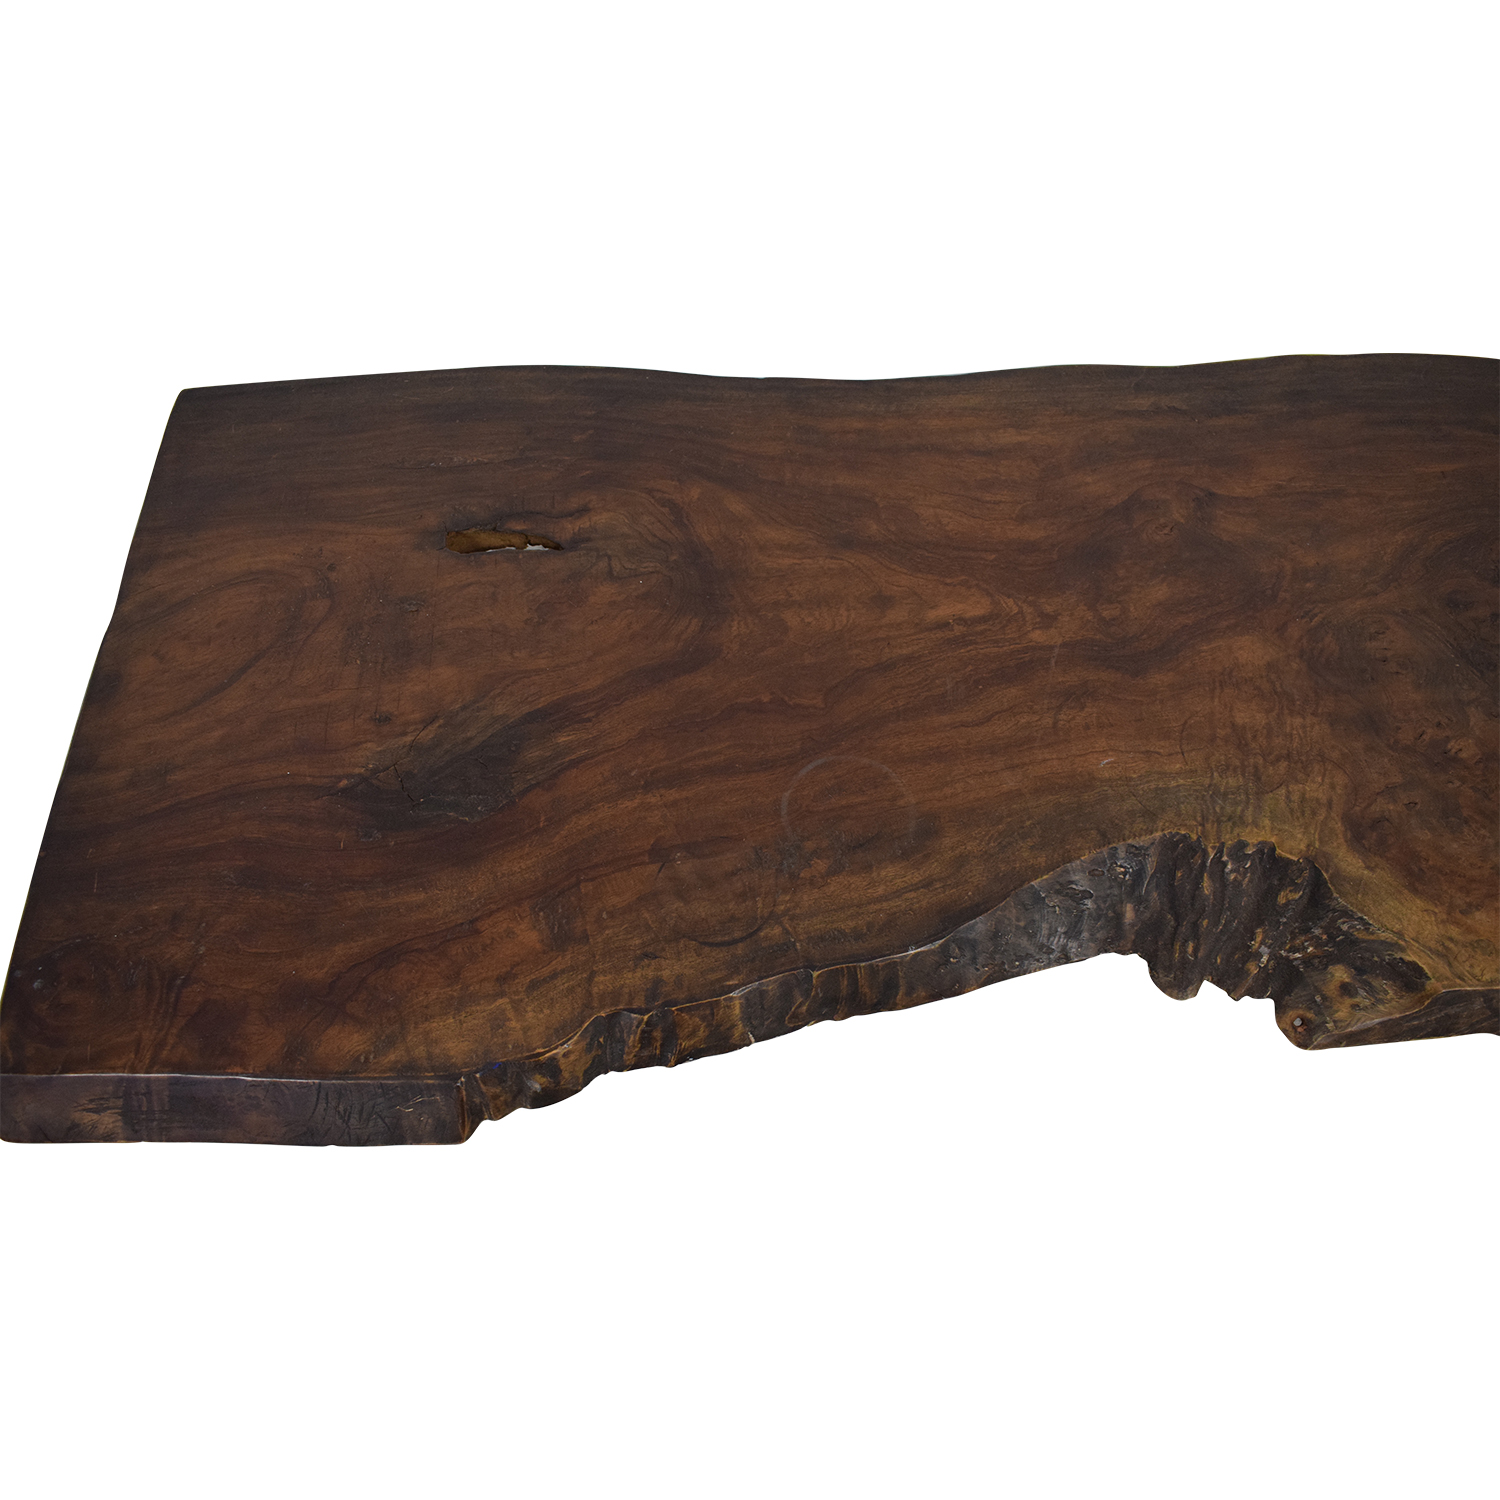 Fitch Slab Dining Table ct